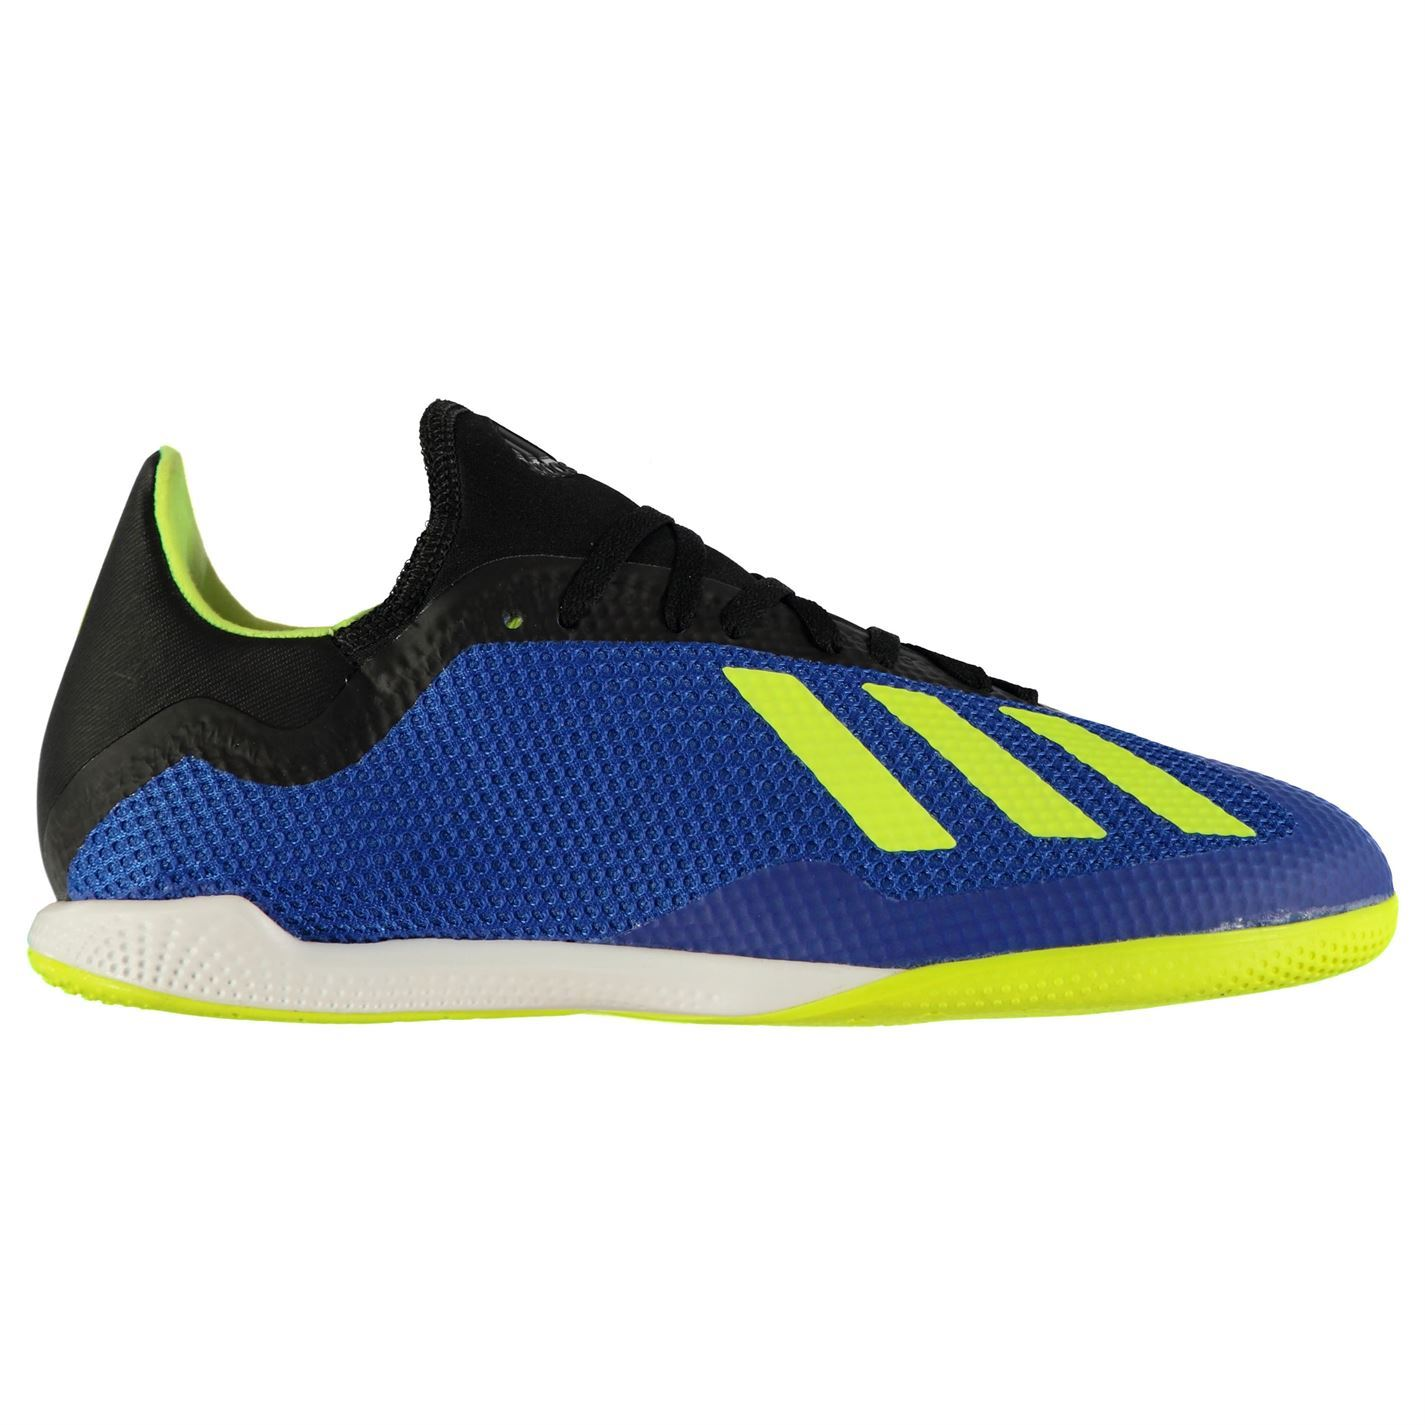 fa5c399c959c ... adidas X Tango 18.3 Indoor Football Trainers Mens Blue/Yellow/Black  Soccer Shoes ...